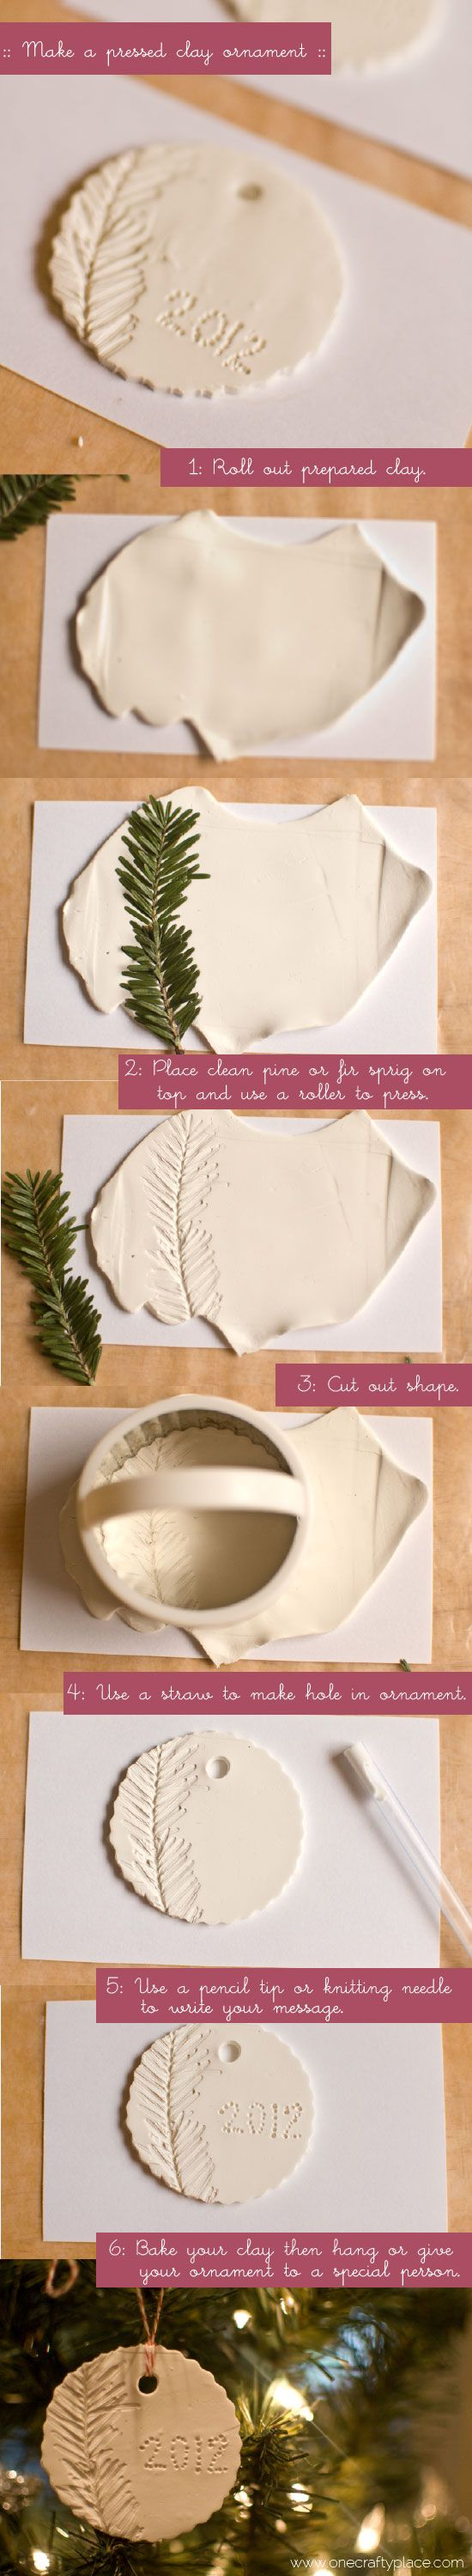 clay ornament tutorial  : inspiration